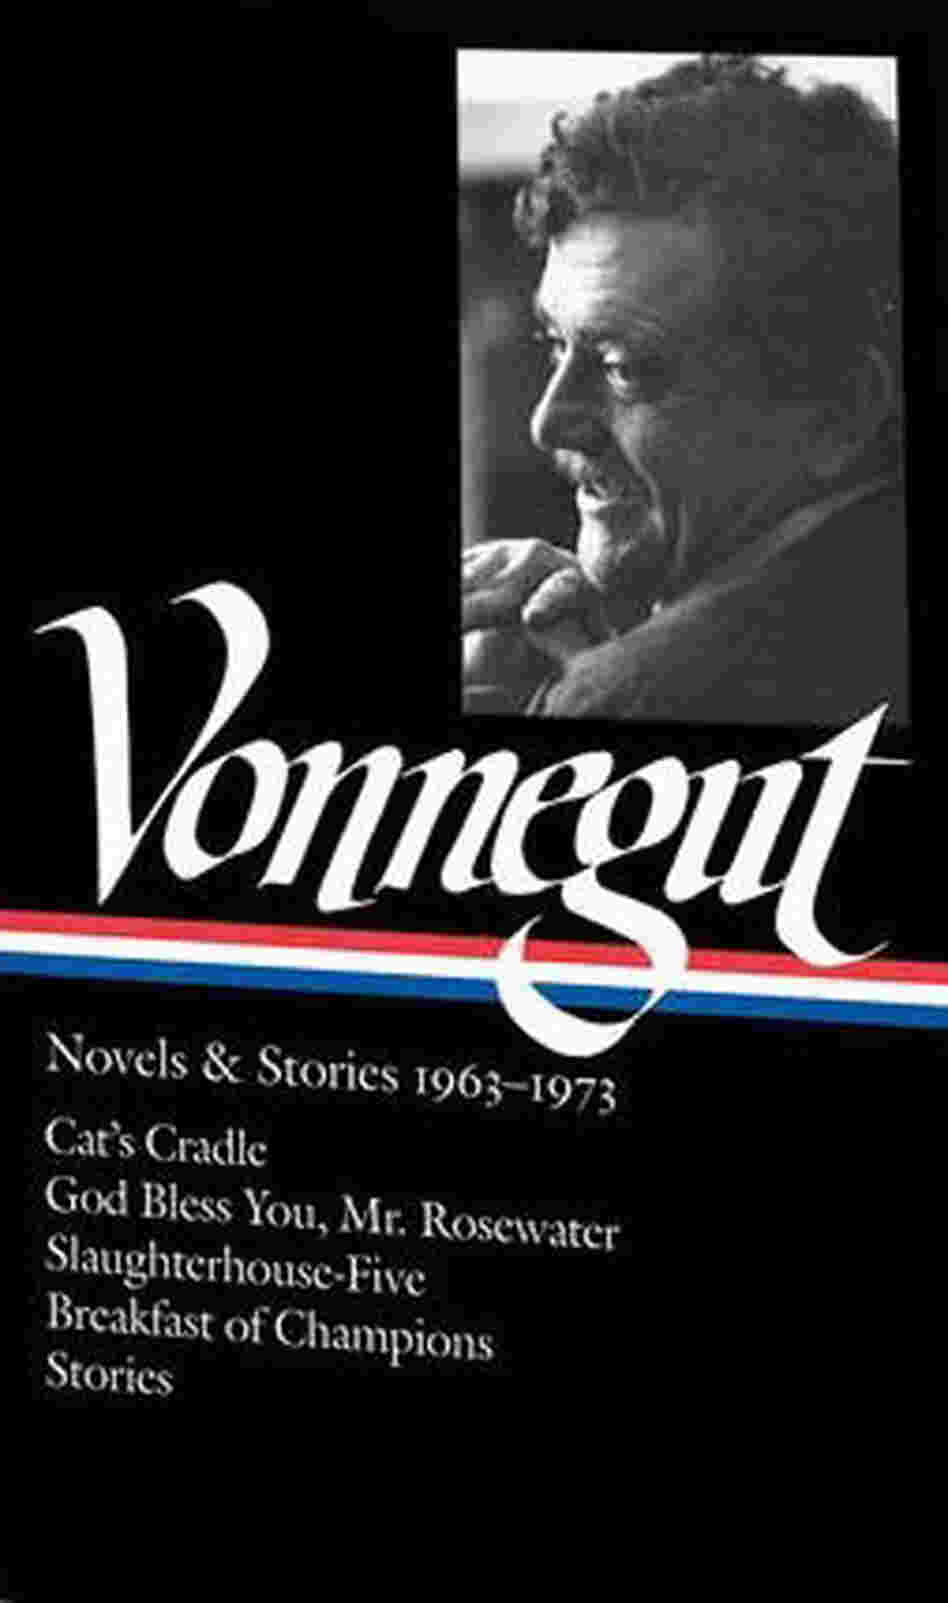 Vonnegut Novels & Stories: 1963-1973 by Kurt Vonnegut